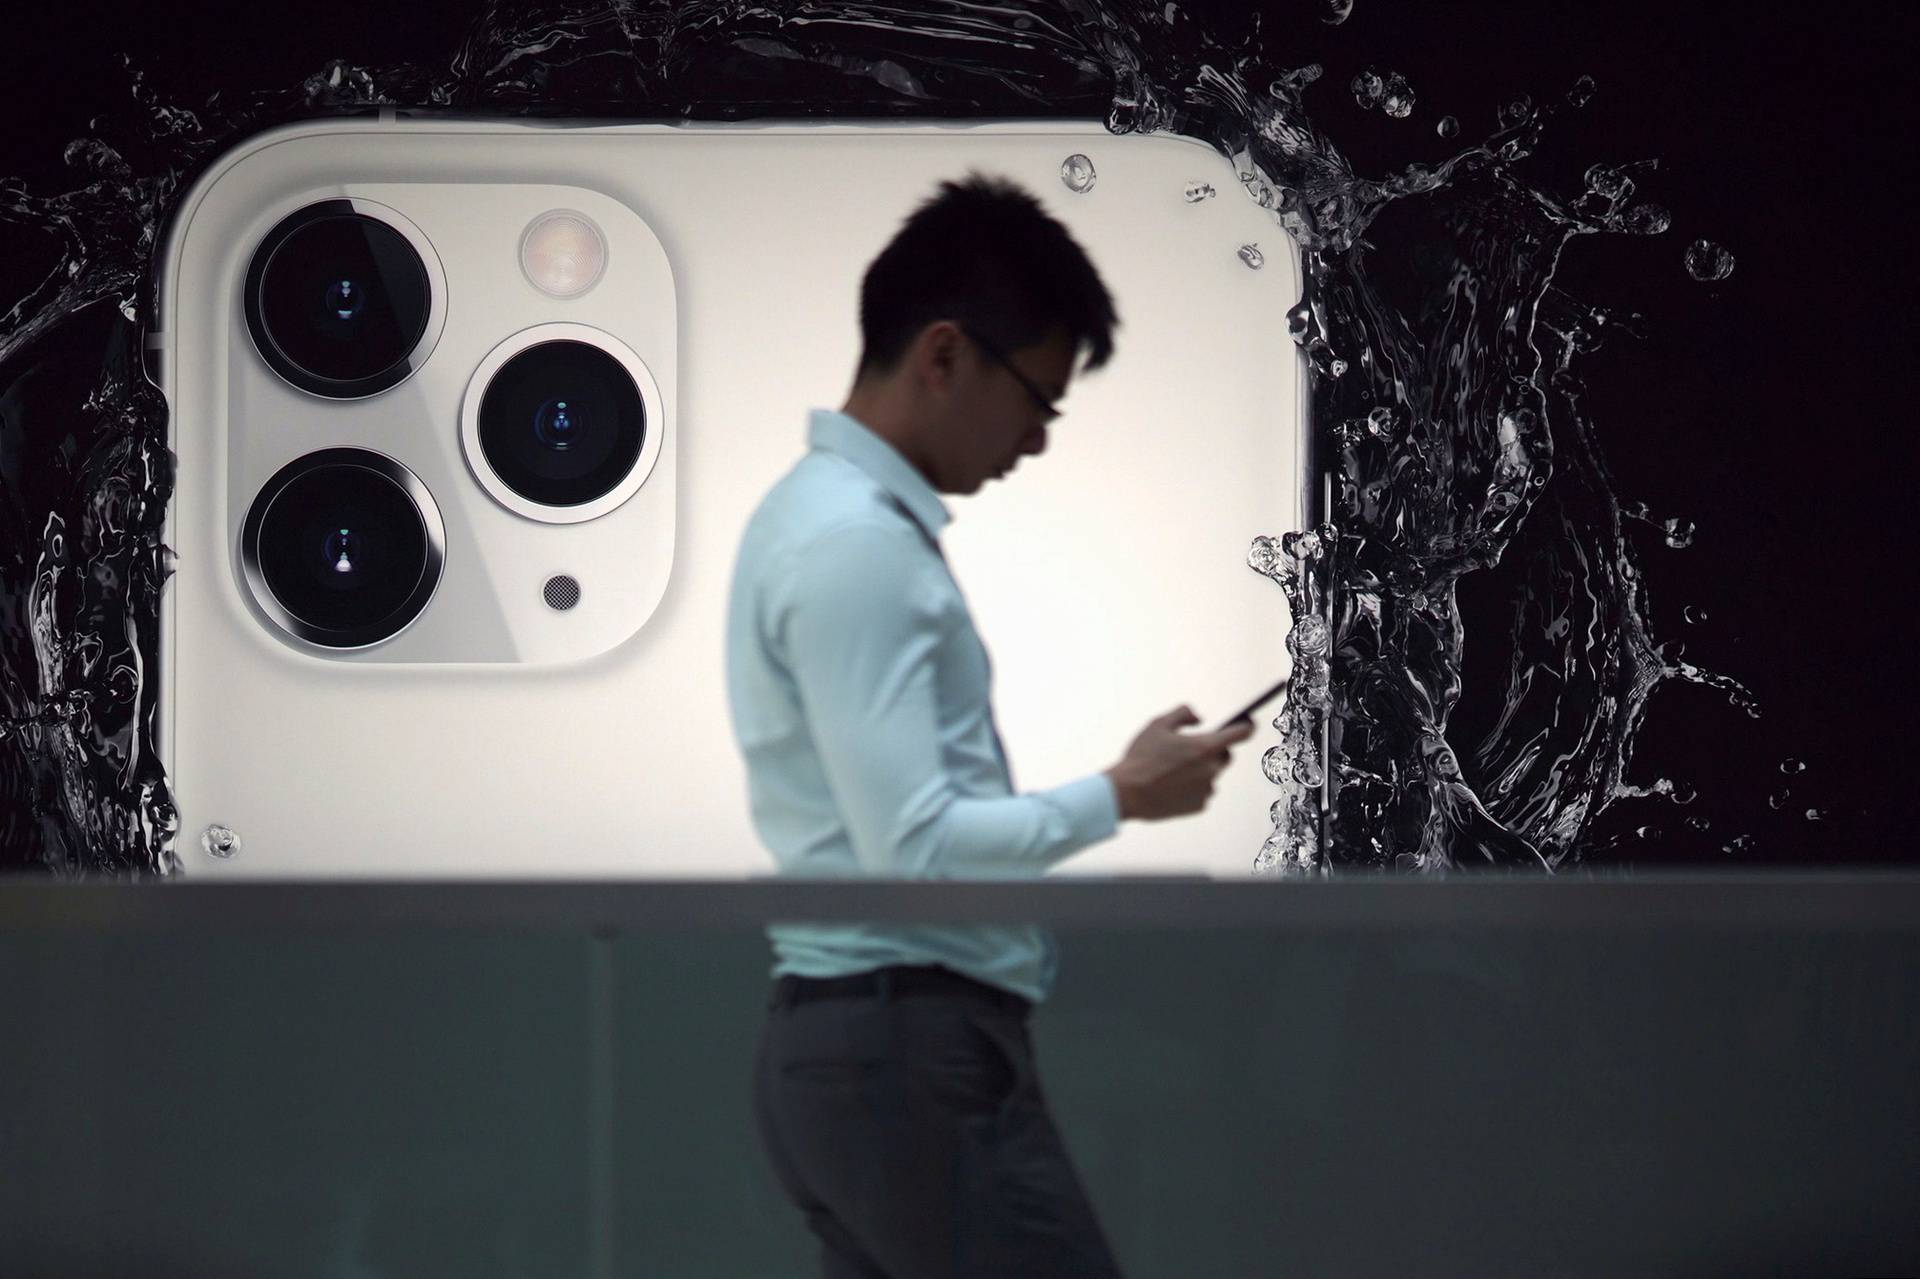 FILE PHOTO: A man walks next to an advertisement for Apple's new iPhone 11 Pro at the Apple Store in IFC, Central district, Hong Kong, China